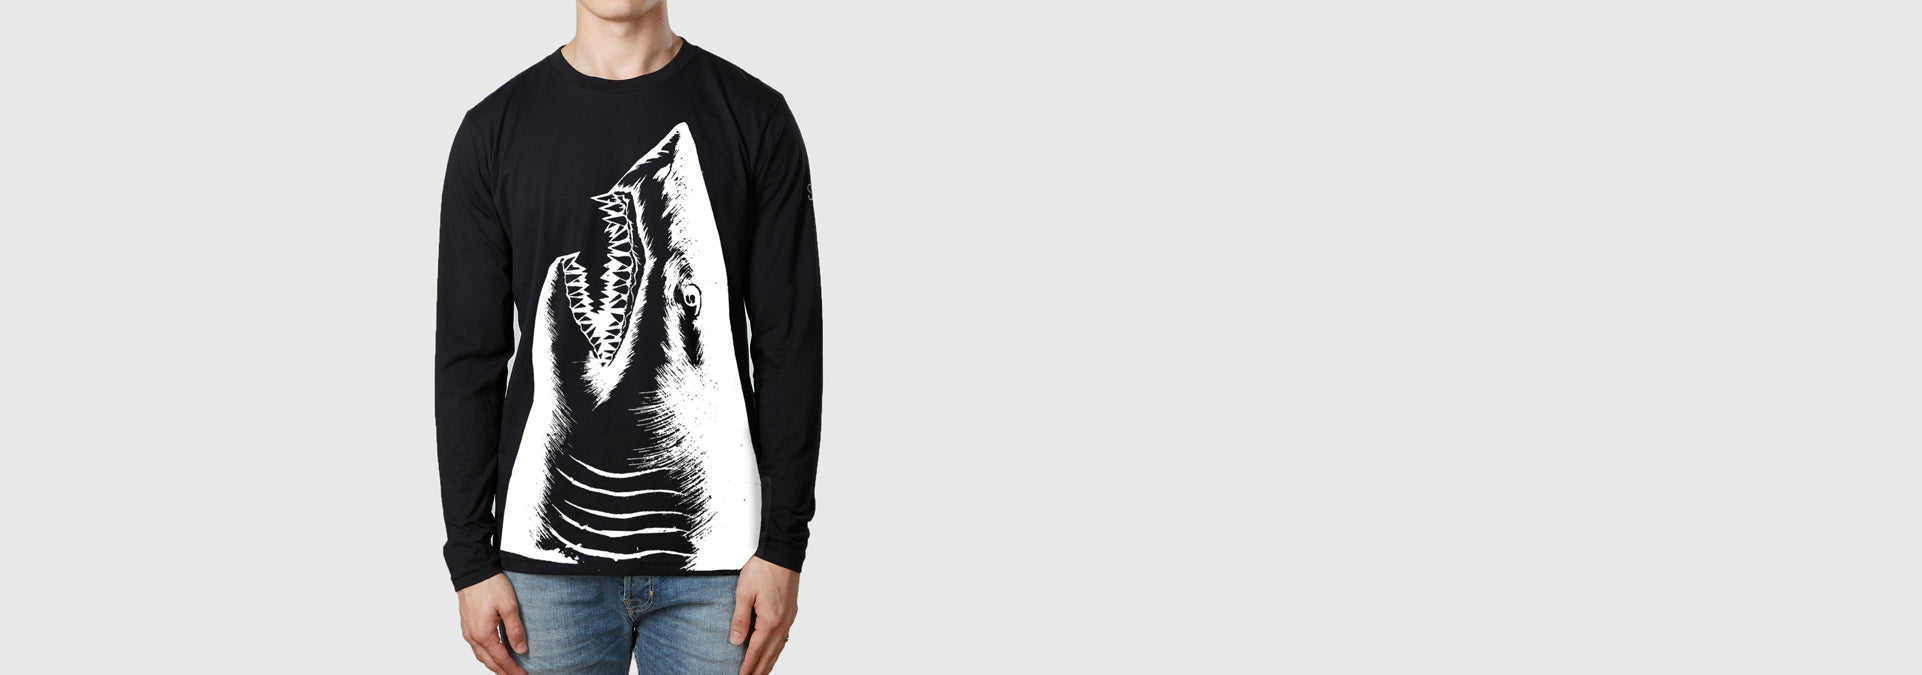 Shark L/S T-Shirt Black